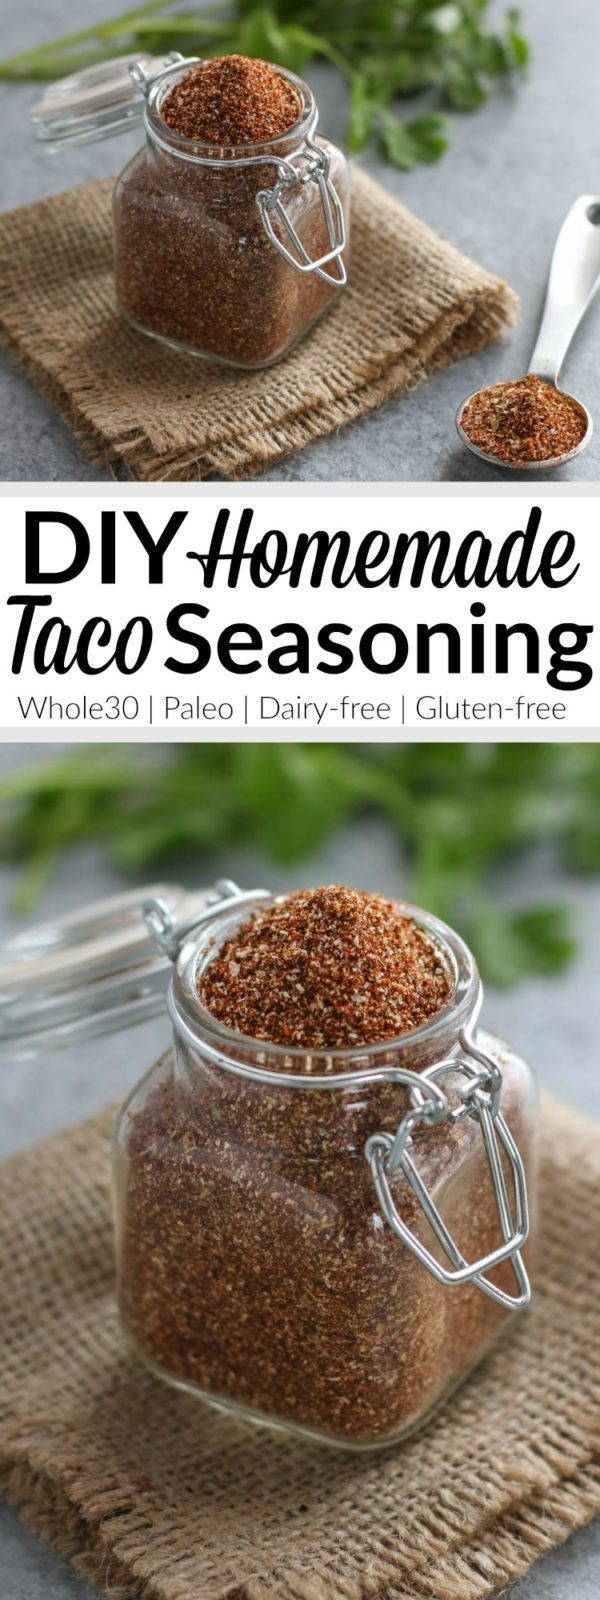 A DIY taco seasoning that's no-fuss and free of fillers, preservatives and sugar. Makes enough to season 3 pounds of ground meat. Also great for seasoning fajitas and as a rub for grilled chicken, steak or shrimp. | Whole30 | Paleo | Grain-free | Dairy-free | therealfoodrds.com